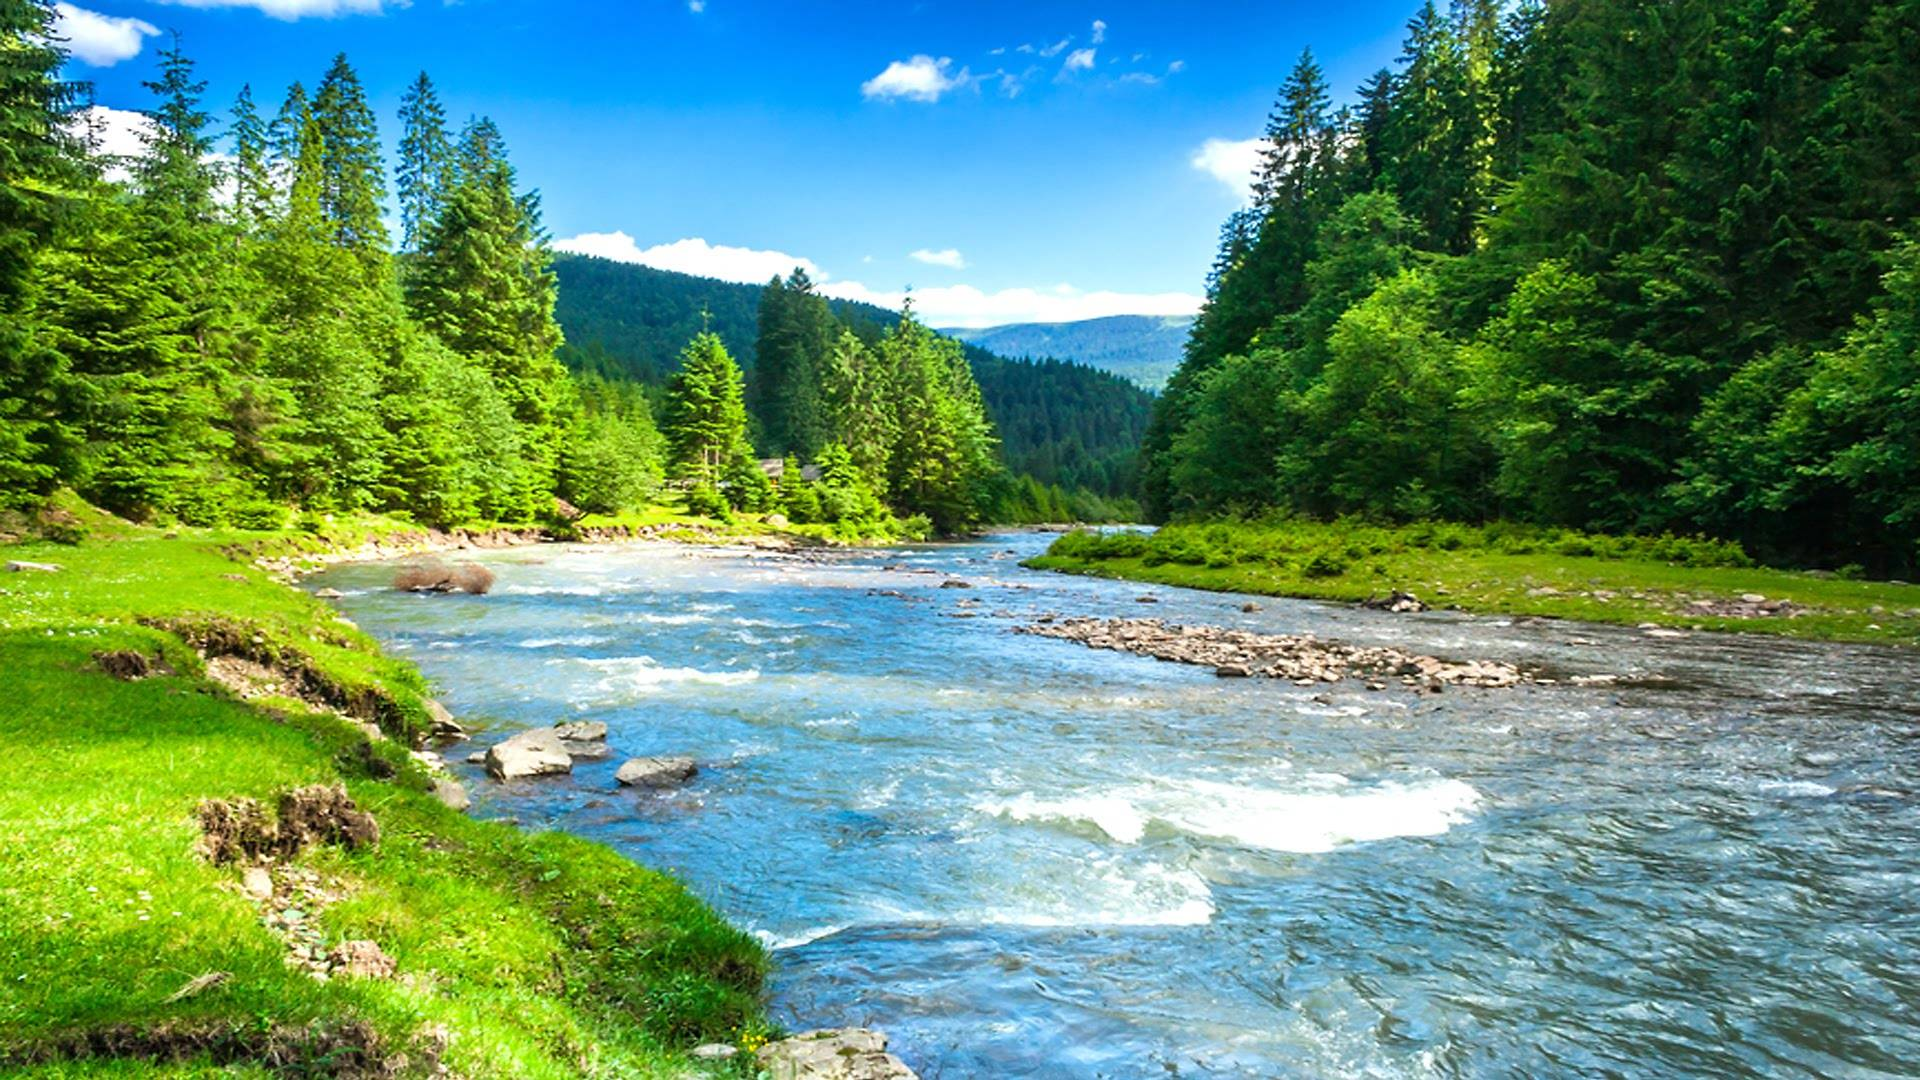 Nature Wallpaper For Pc Full Hd Pictures For Pc Mac Beautiful River 1920x1080 Wallpaper Teahub Io